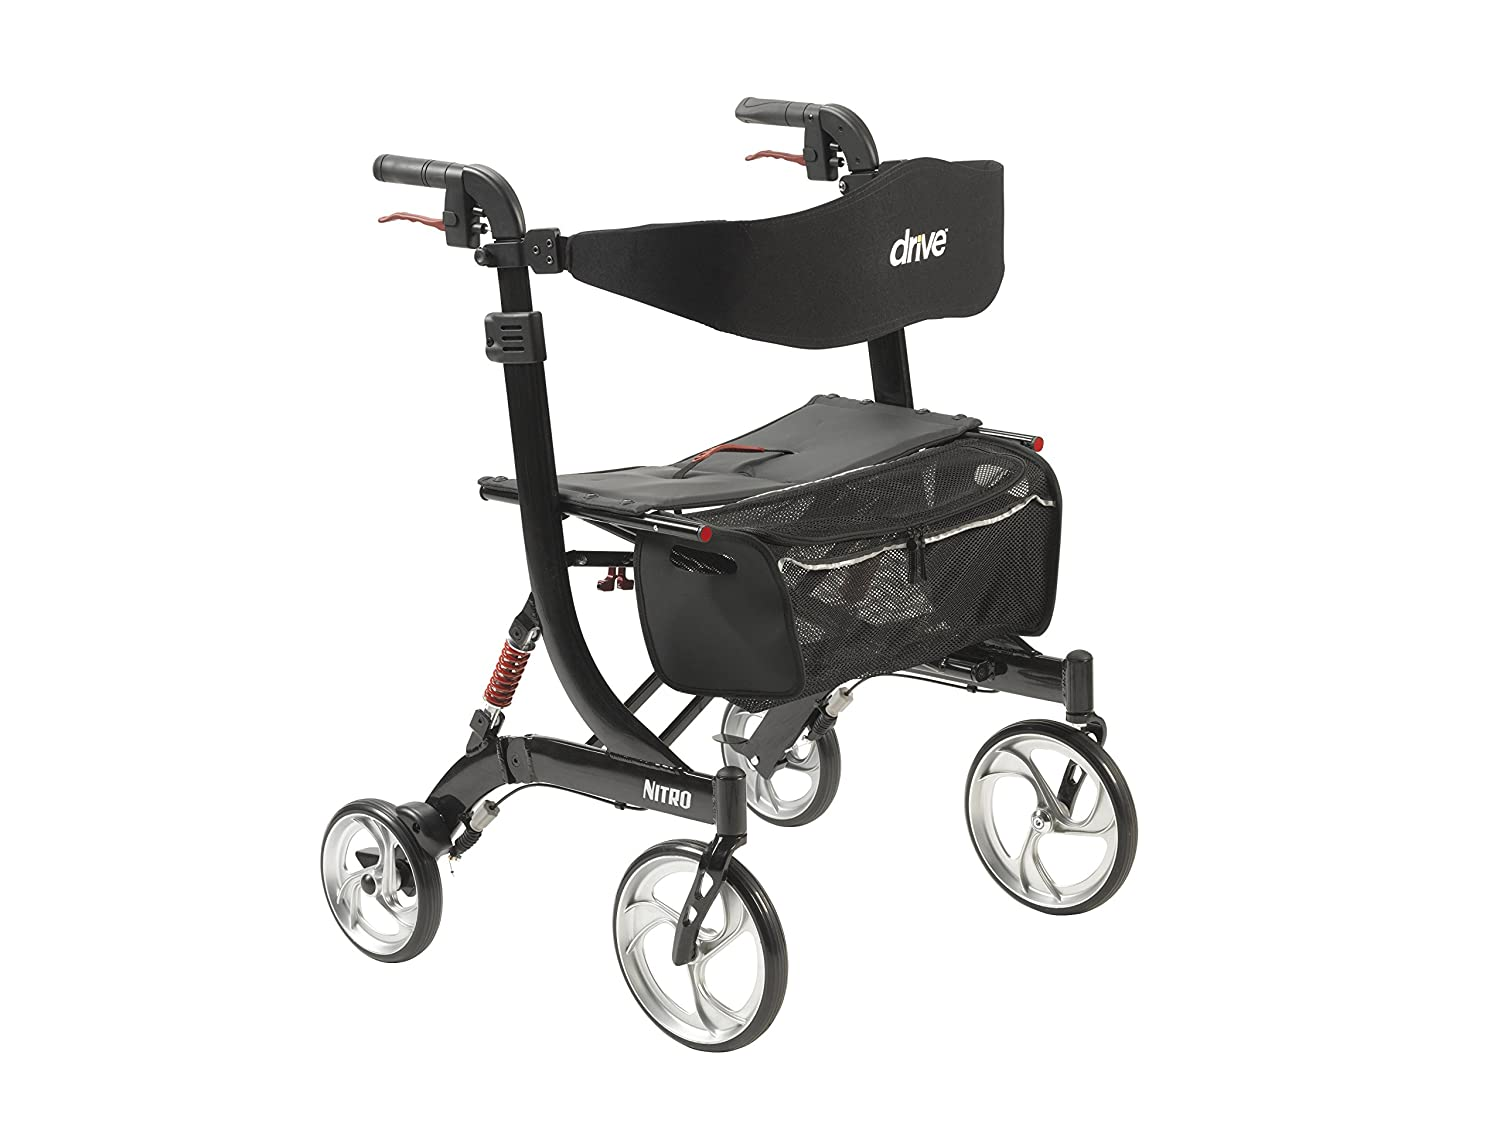 Stroller-cane Baby Care GT4: photos, review, pros and cons of the model, customer reviews 76